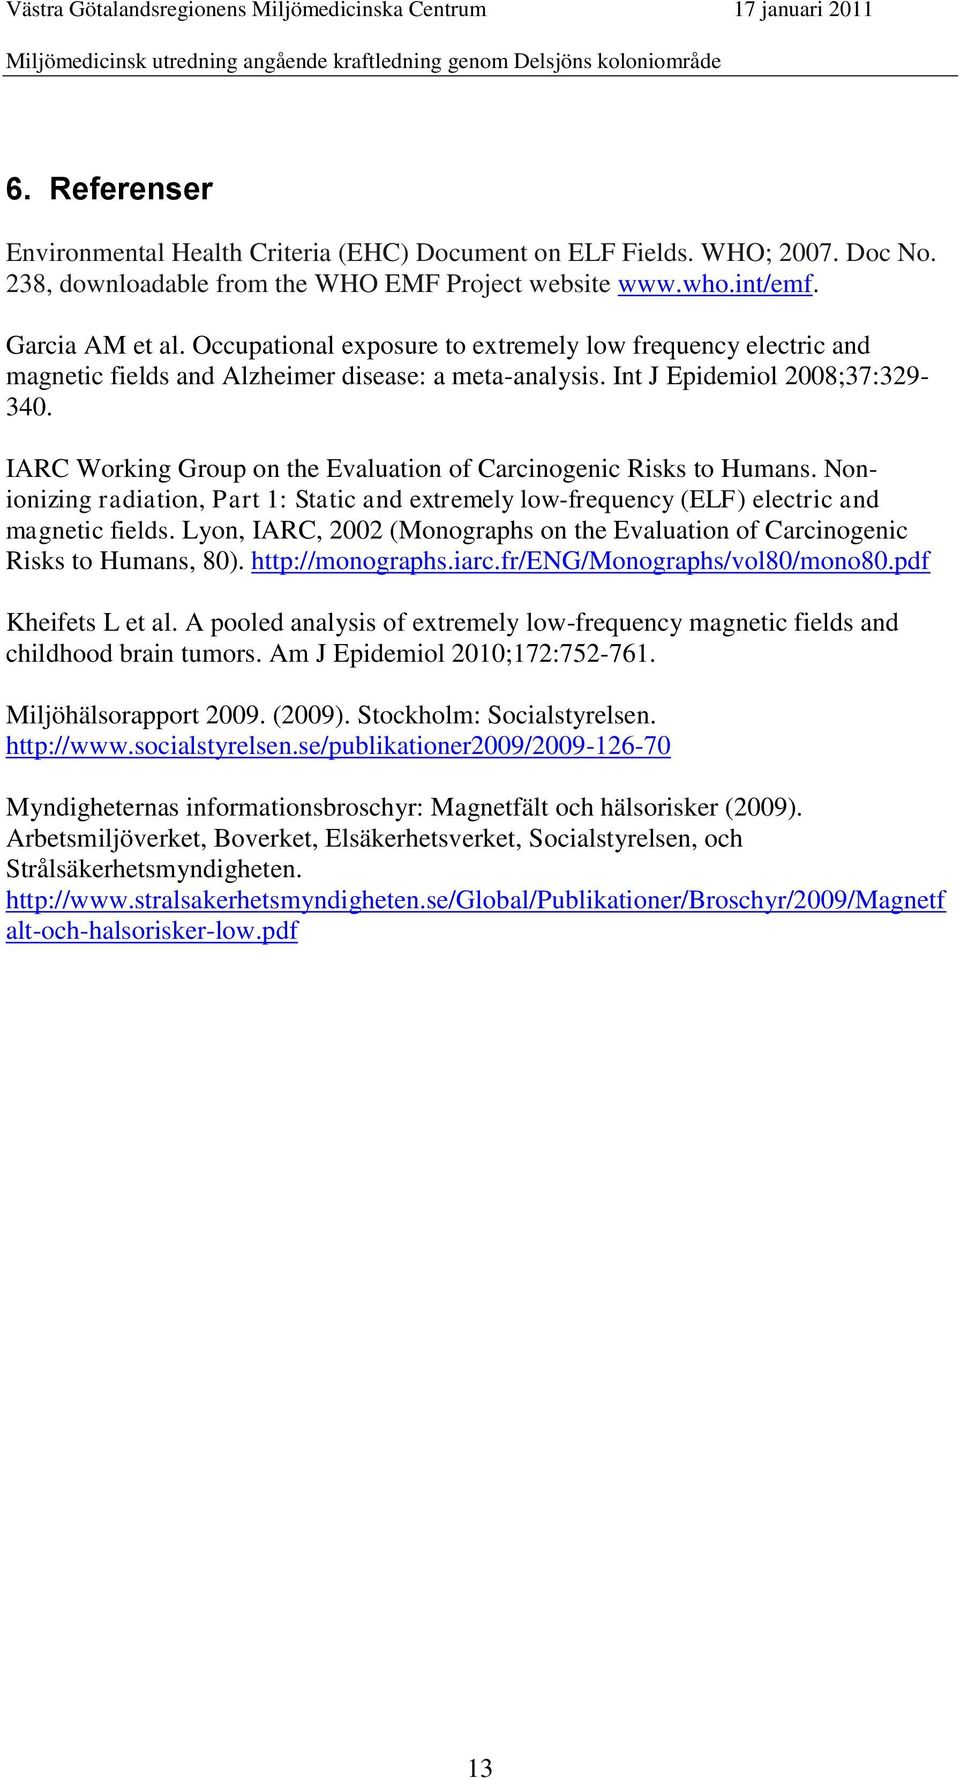 IARC Working Group on the Evaluation of Carcinogenic Risks to Humans. Nonionizing radiation, Part 1: Static and extremely low-frequency (ELF) electric and magnetic fields.